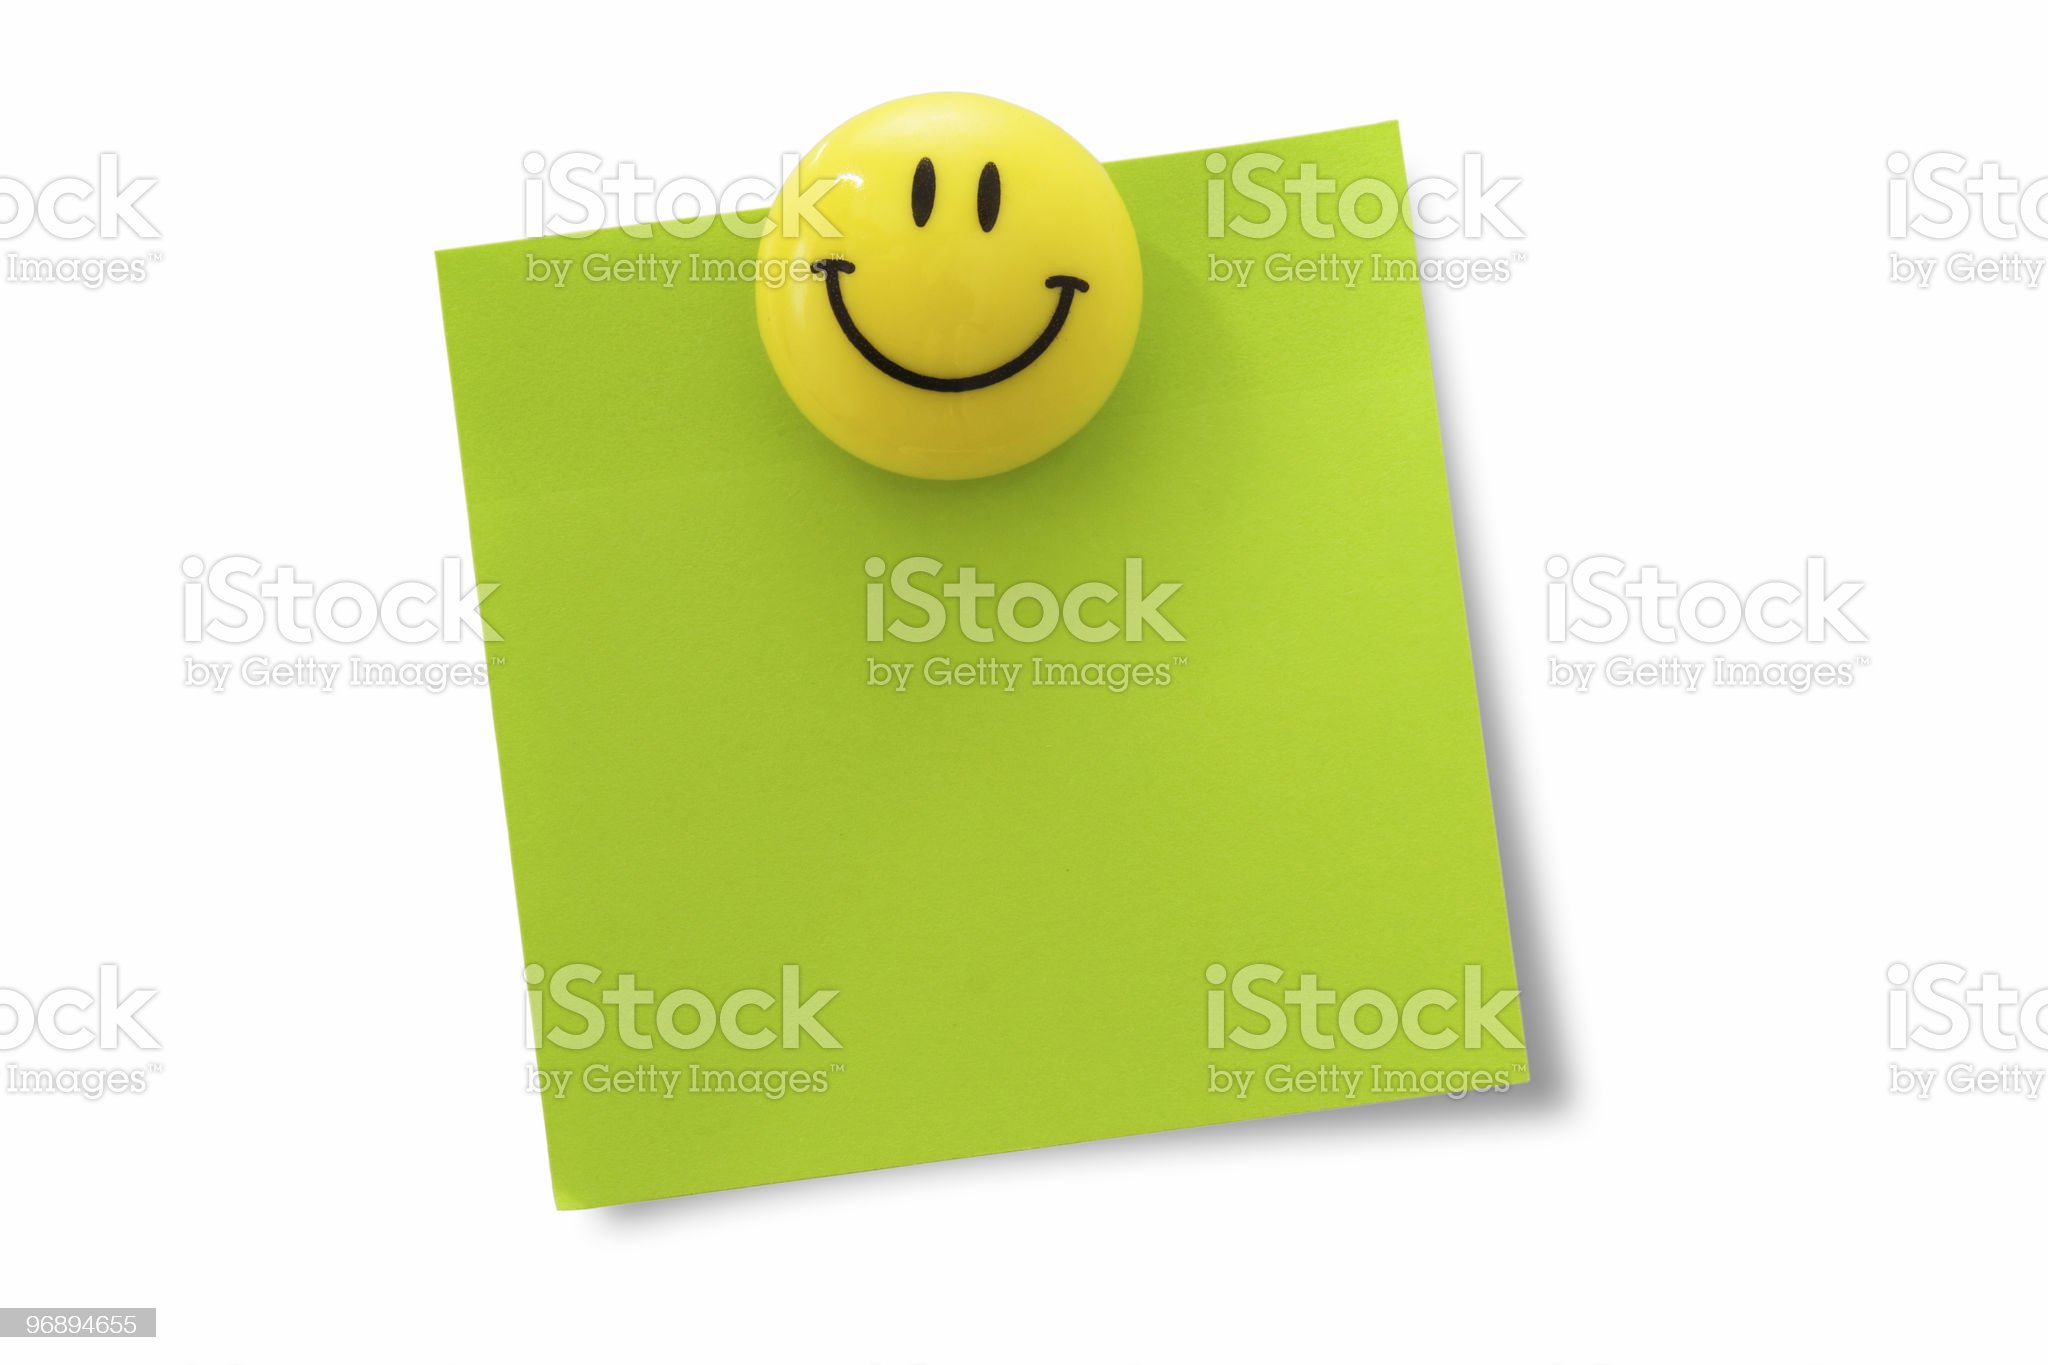 Magnetic clip royalty-free stock photo